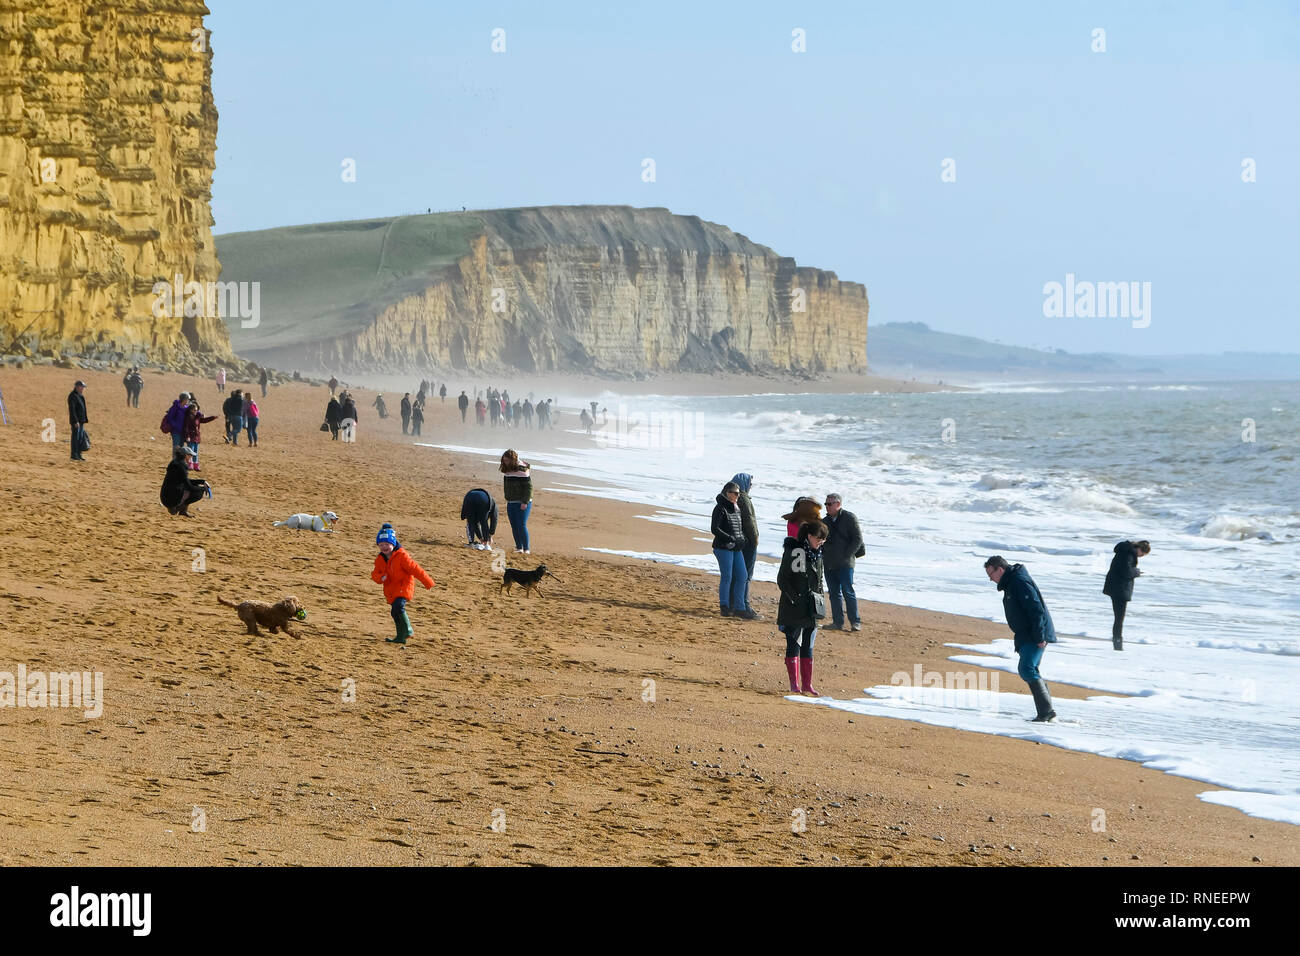 West Bay Dorset Uk 19th February 2019 Uk Weather Visitors Flock To The Beach At West